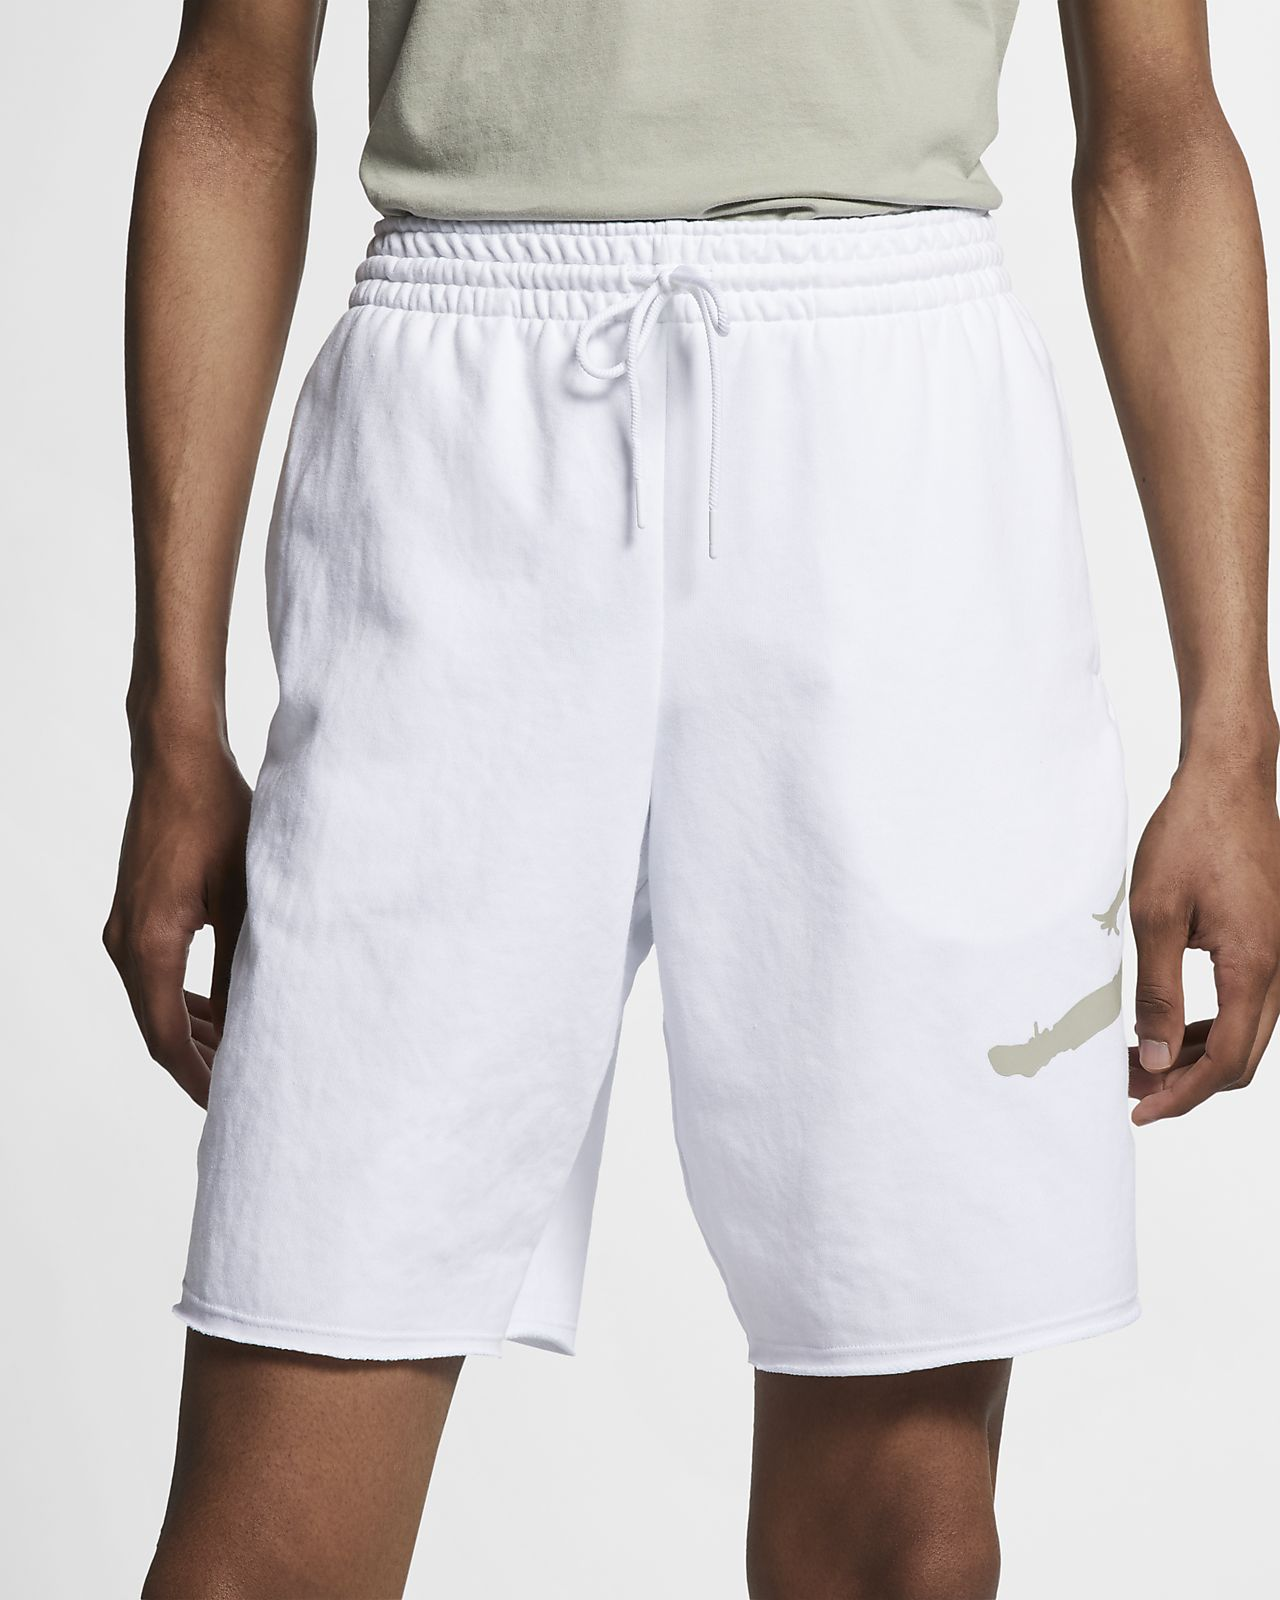 d295388a2b12 Jordan Jumpman Logo Men s Fleece Shorts. Nike.com